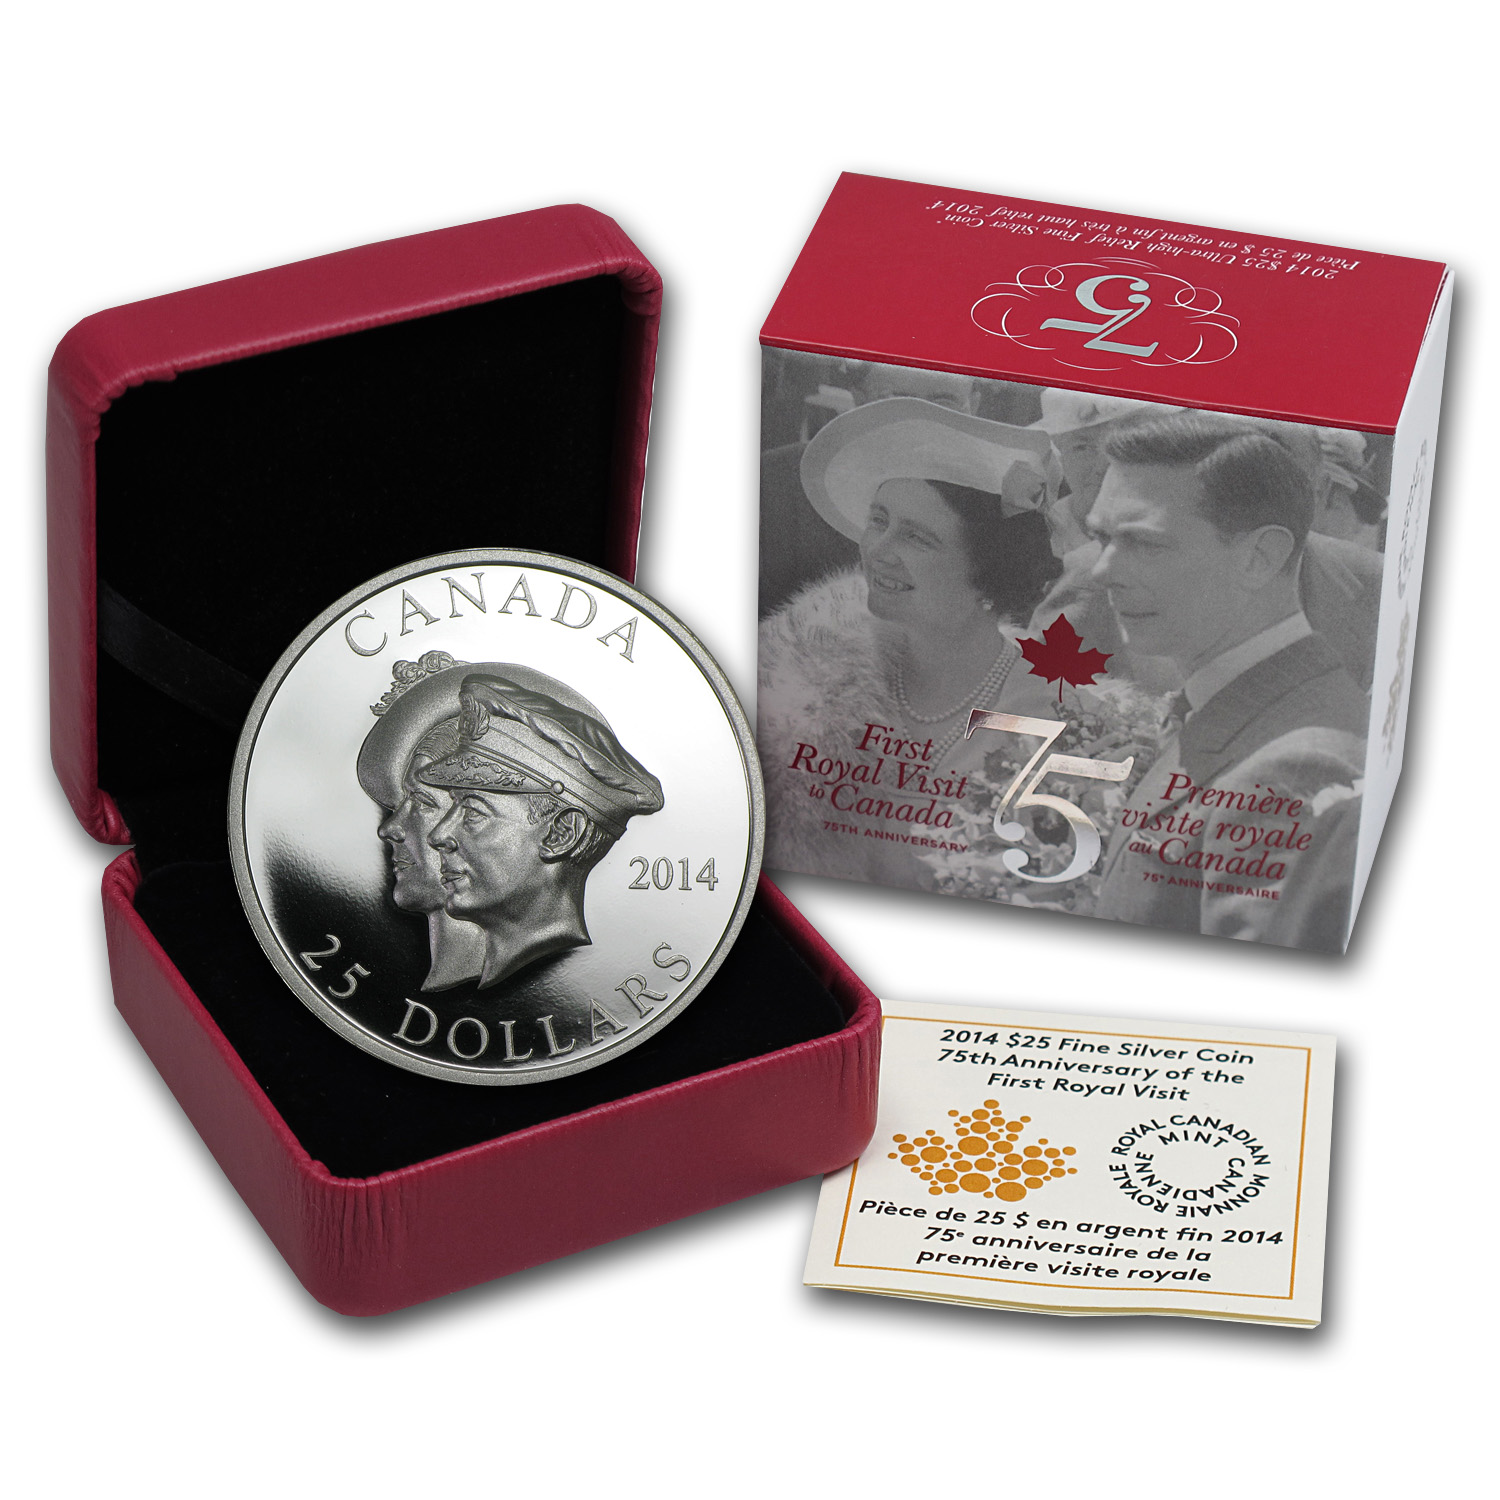 2014 UHR Silver Canadian 75th Anniv. of the First Royal Visit